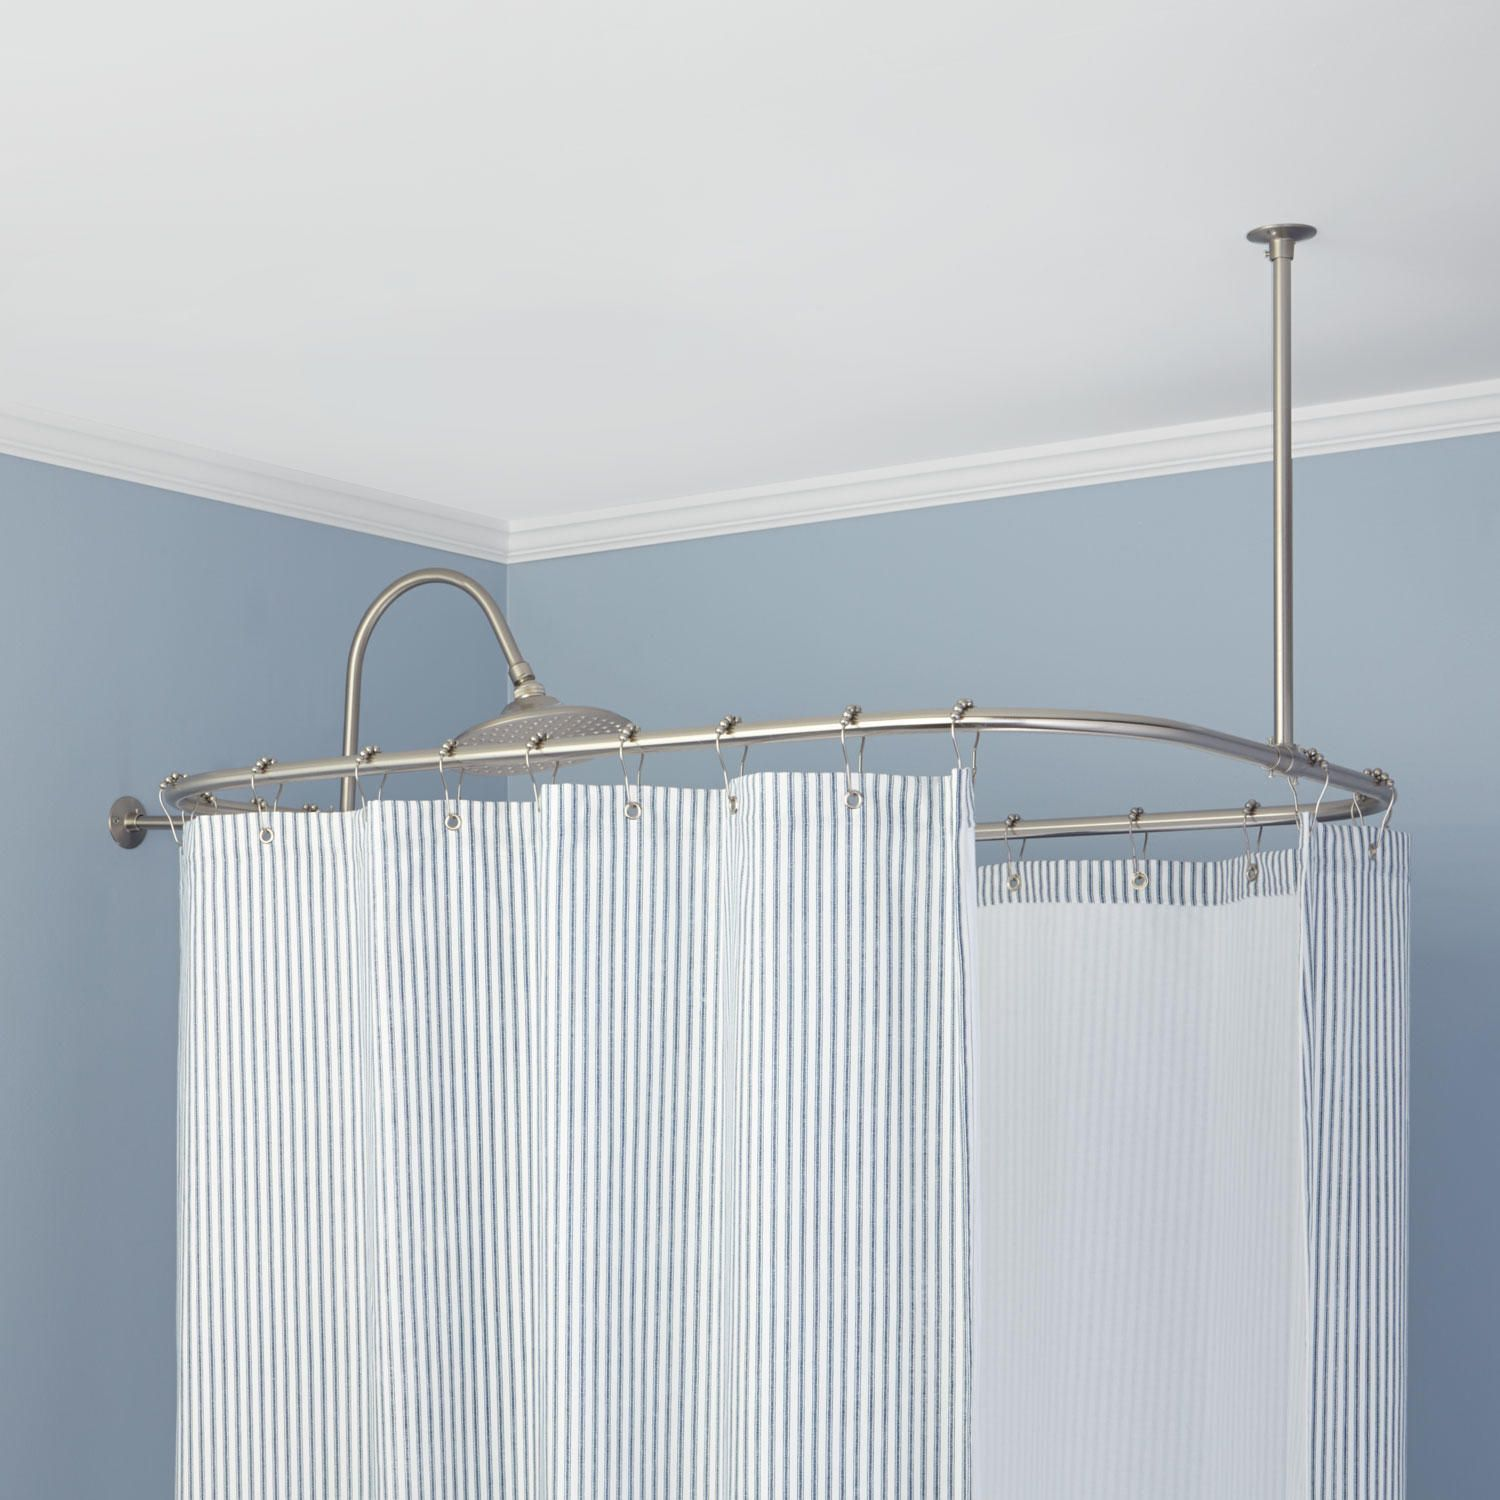 Oval solid brass shower curtain rod shower curtain rods polished